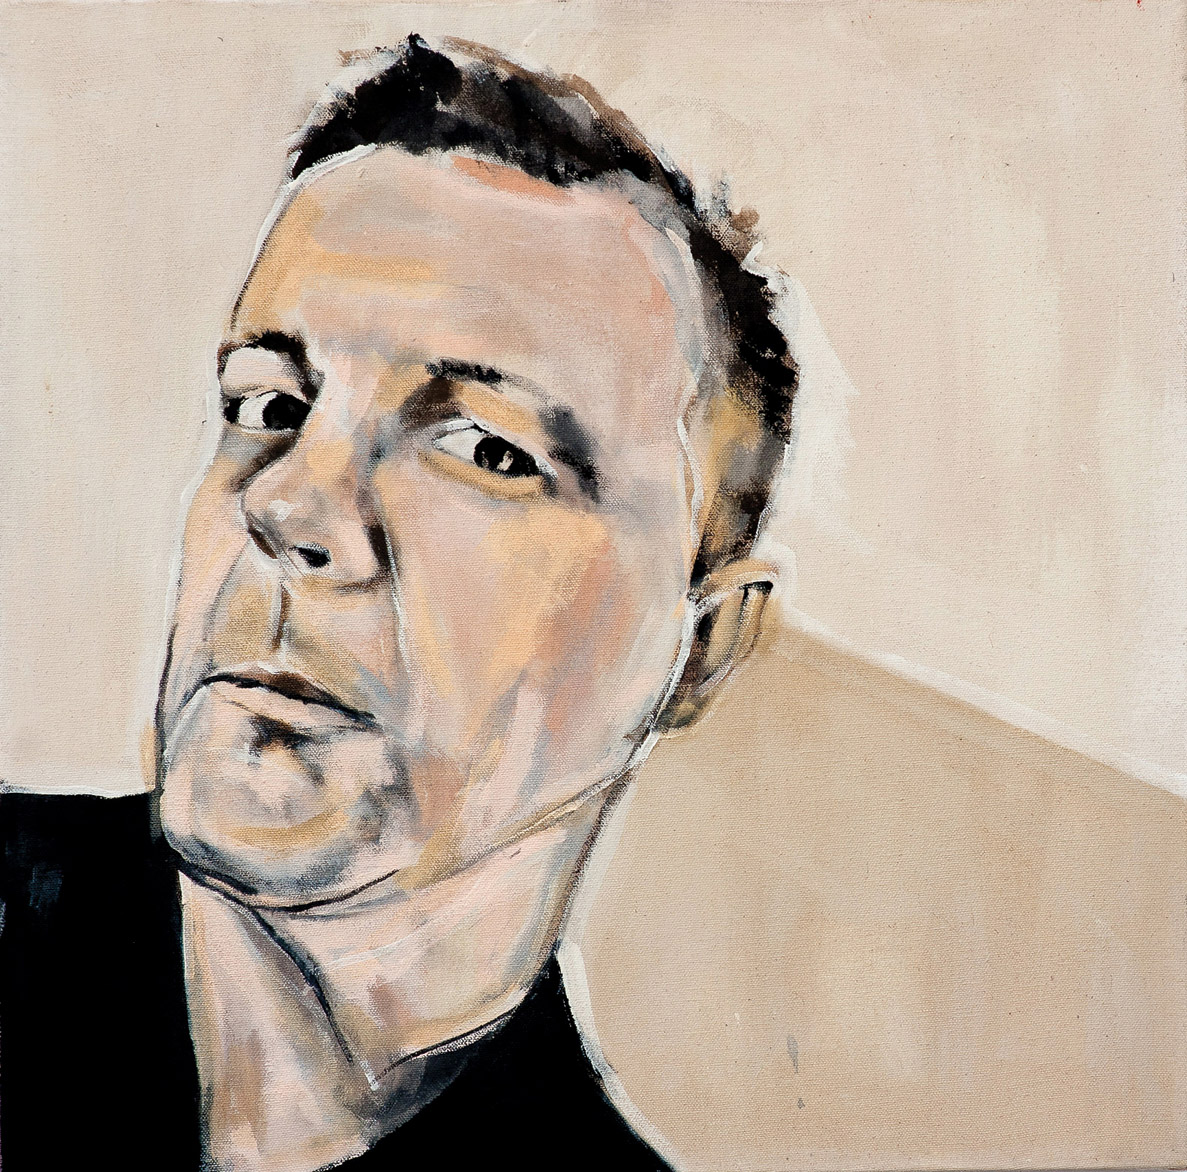 Painting of Christian Bök by Melanie Janisse-Barlow